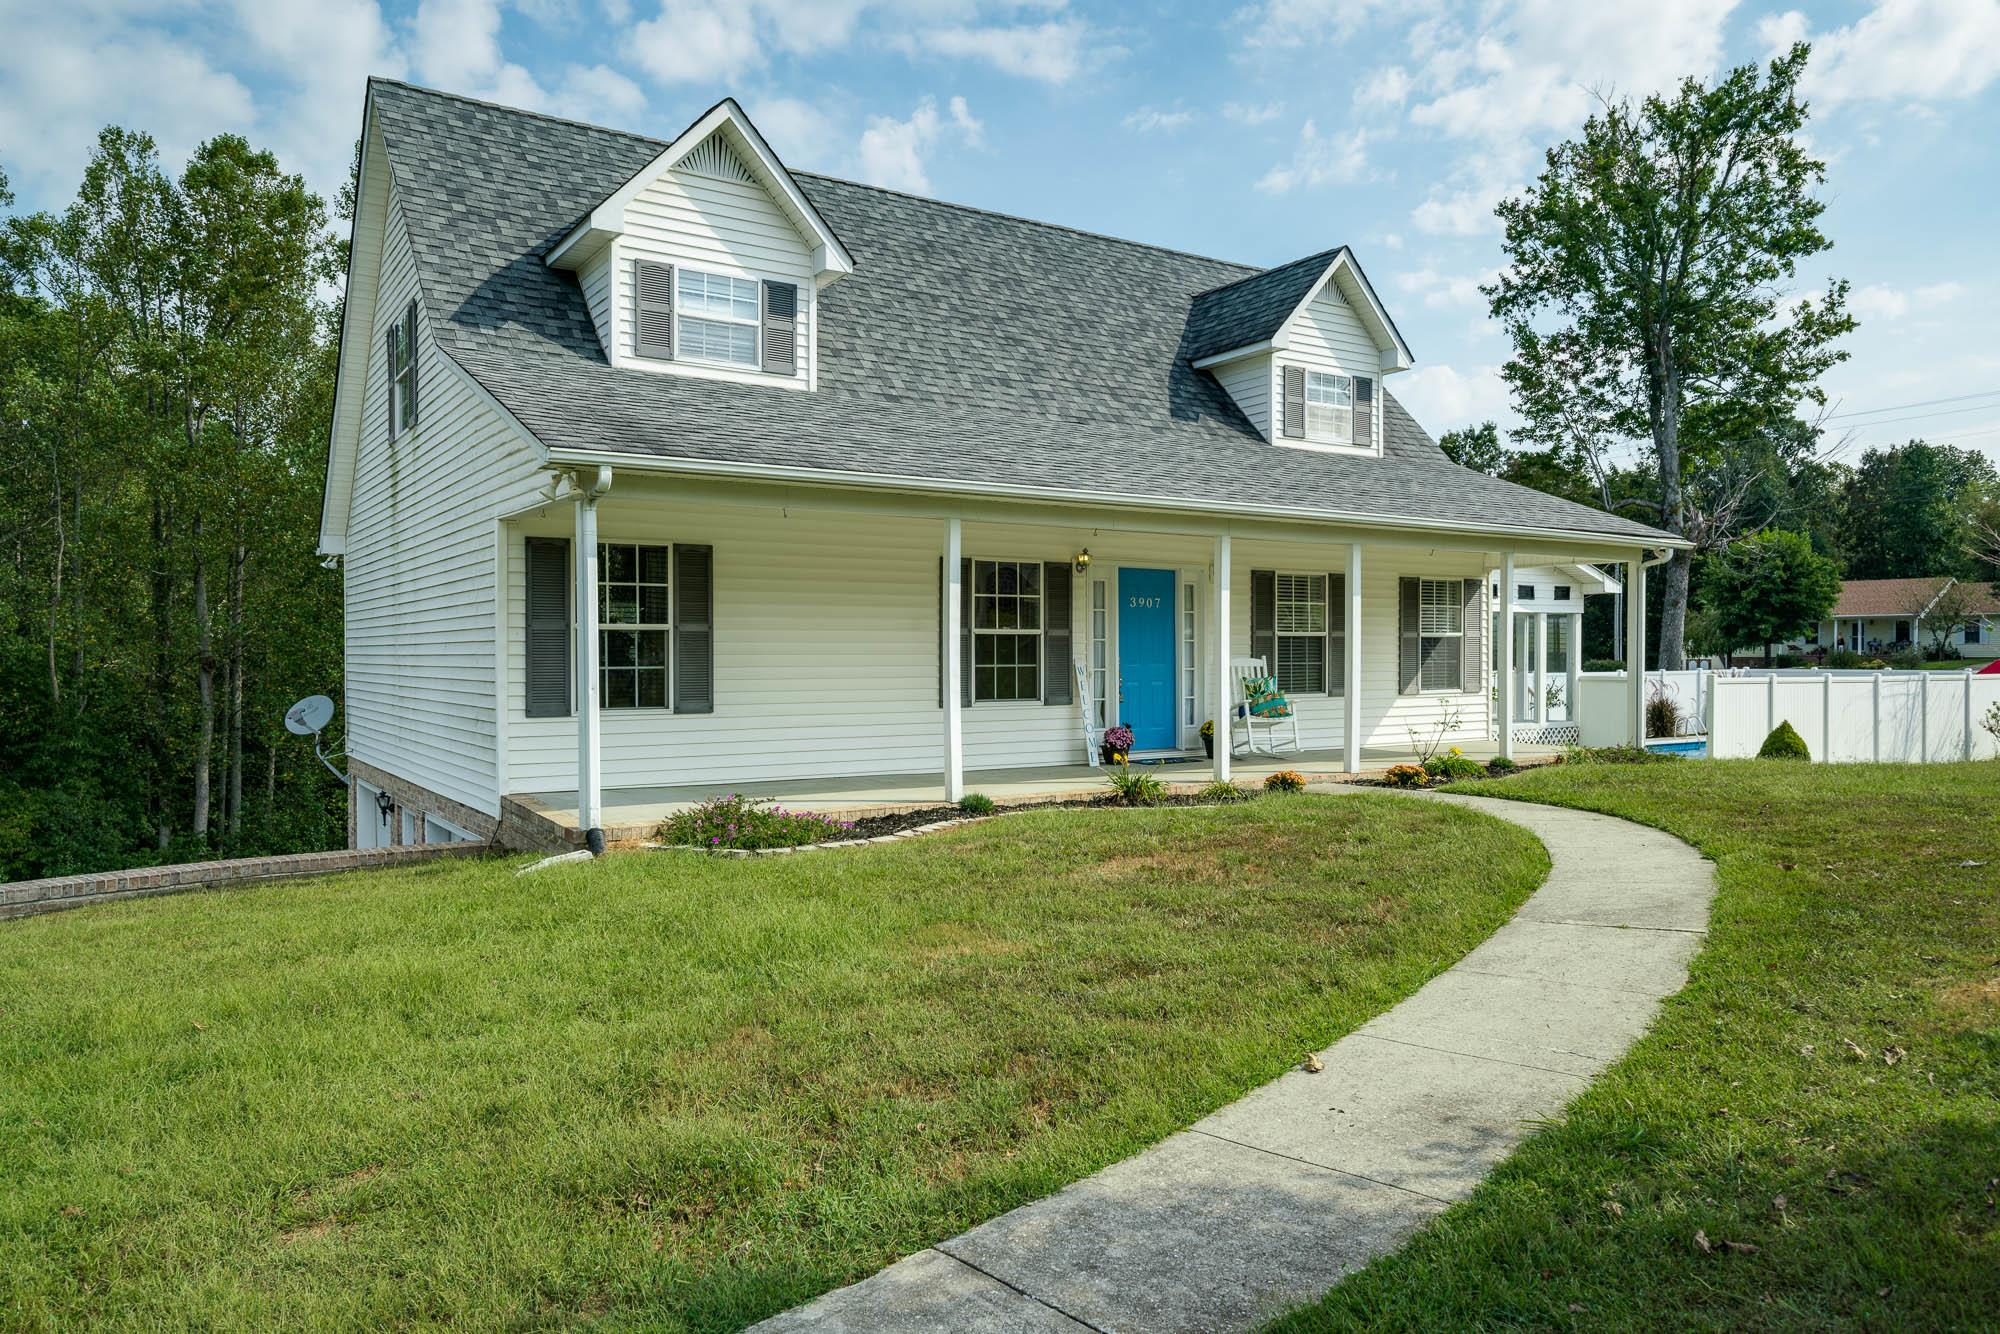 3907 Huntington Dr, Cookeville, TN 38501 - Cookeville, TN real estate listing